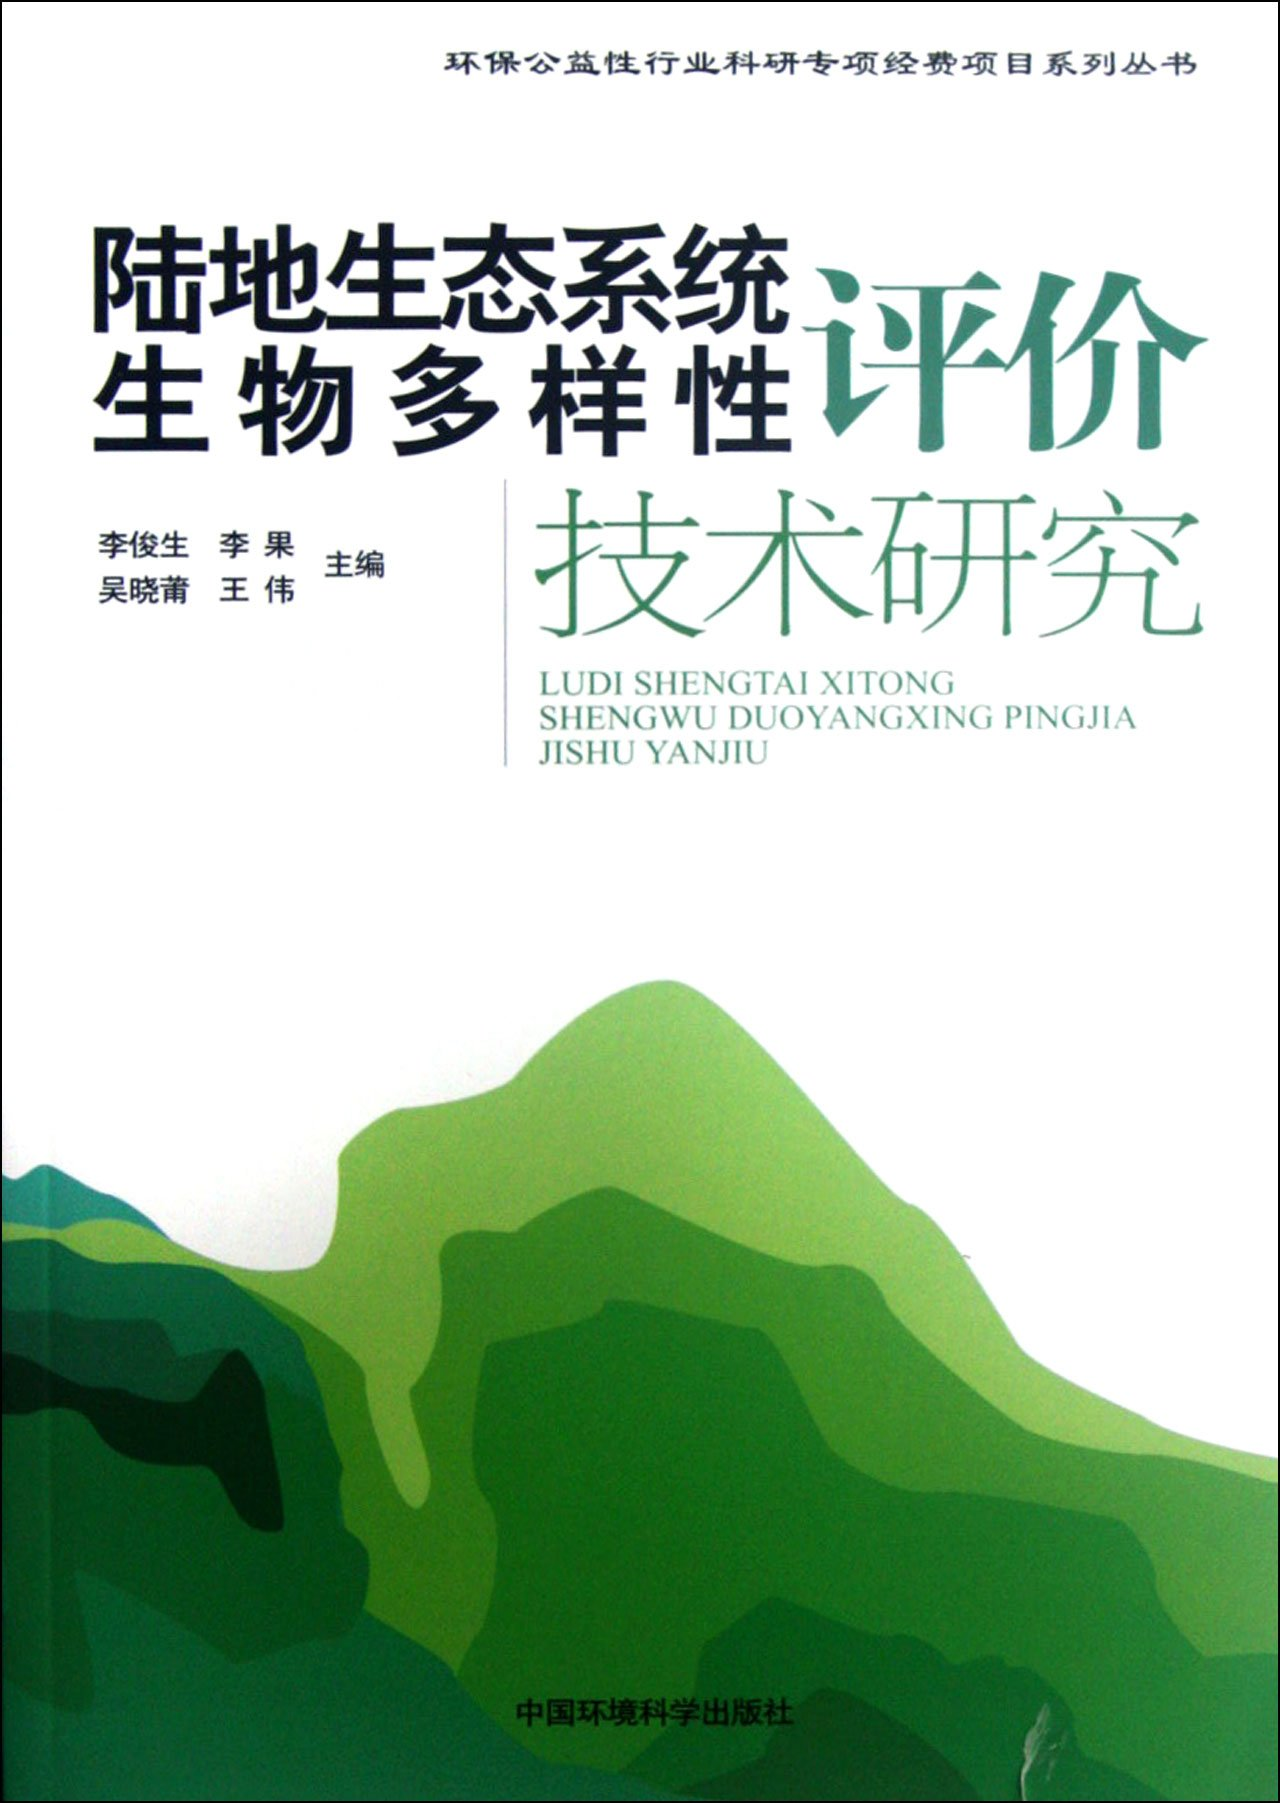 Download Terrestrial Ecosystem Biodiversity Assessment Technology Research (Chinese Edition) ebook